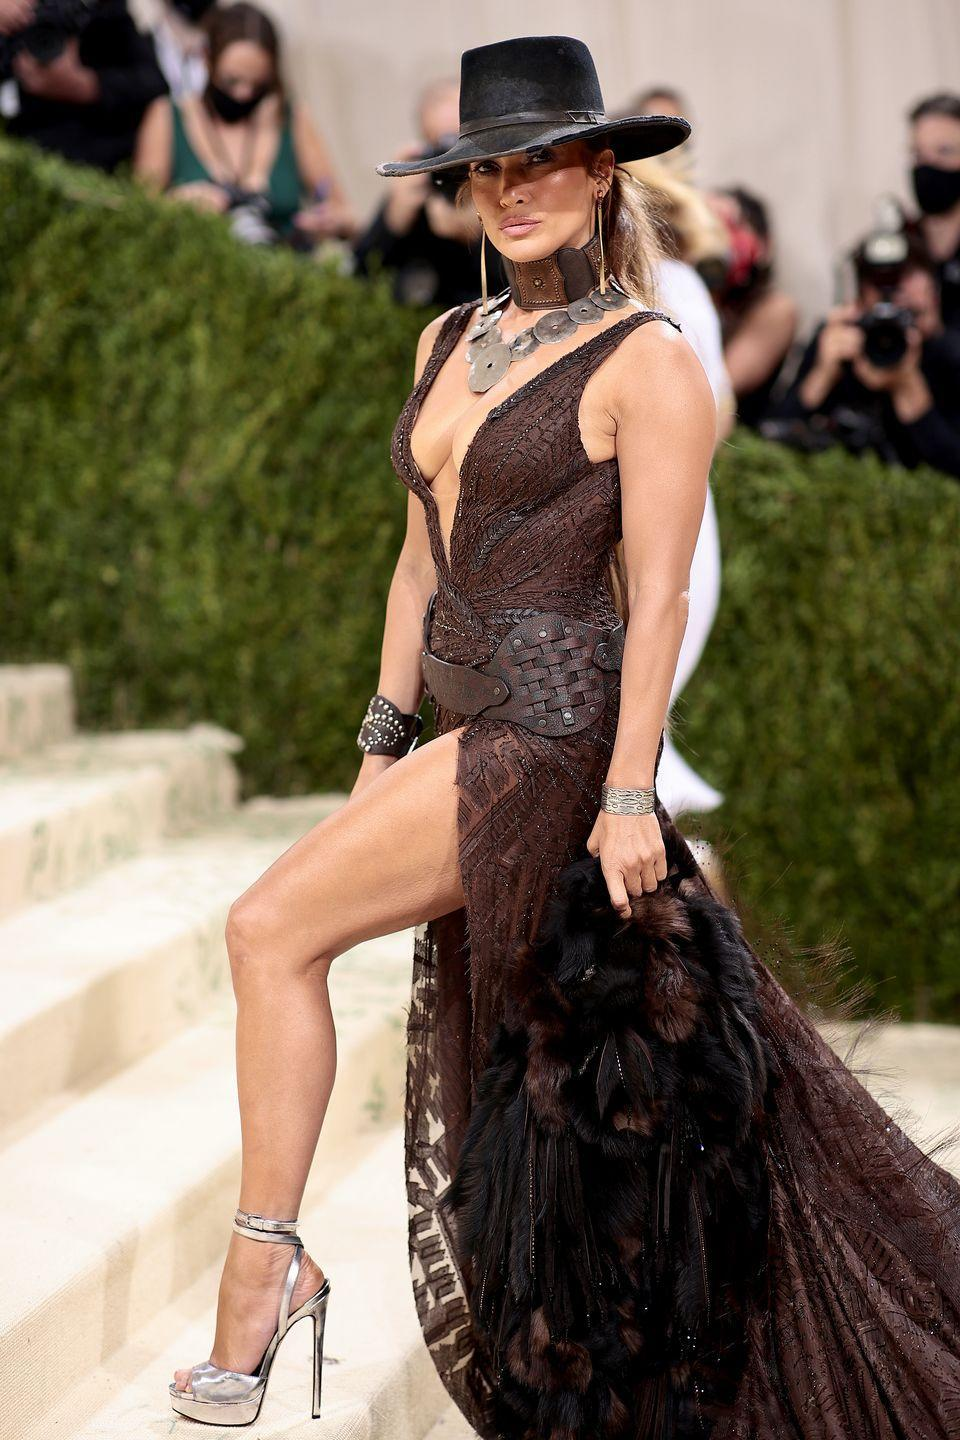 <p>J Lo understood the damn assignment! When the American fashion theme was announced, your girl here called up Ralph Lauren and requested the most glamorous high-fashion cowgirl look he could possibly dream up. </p>